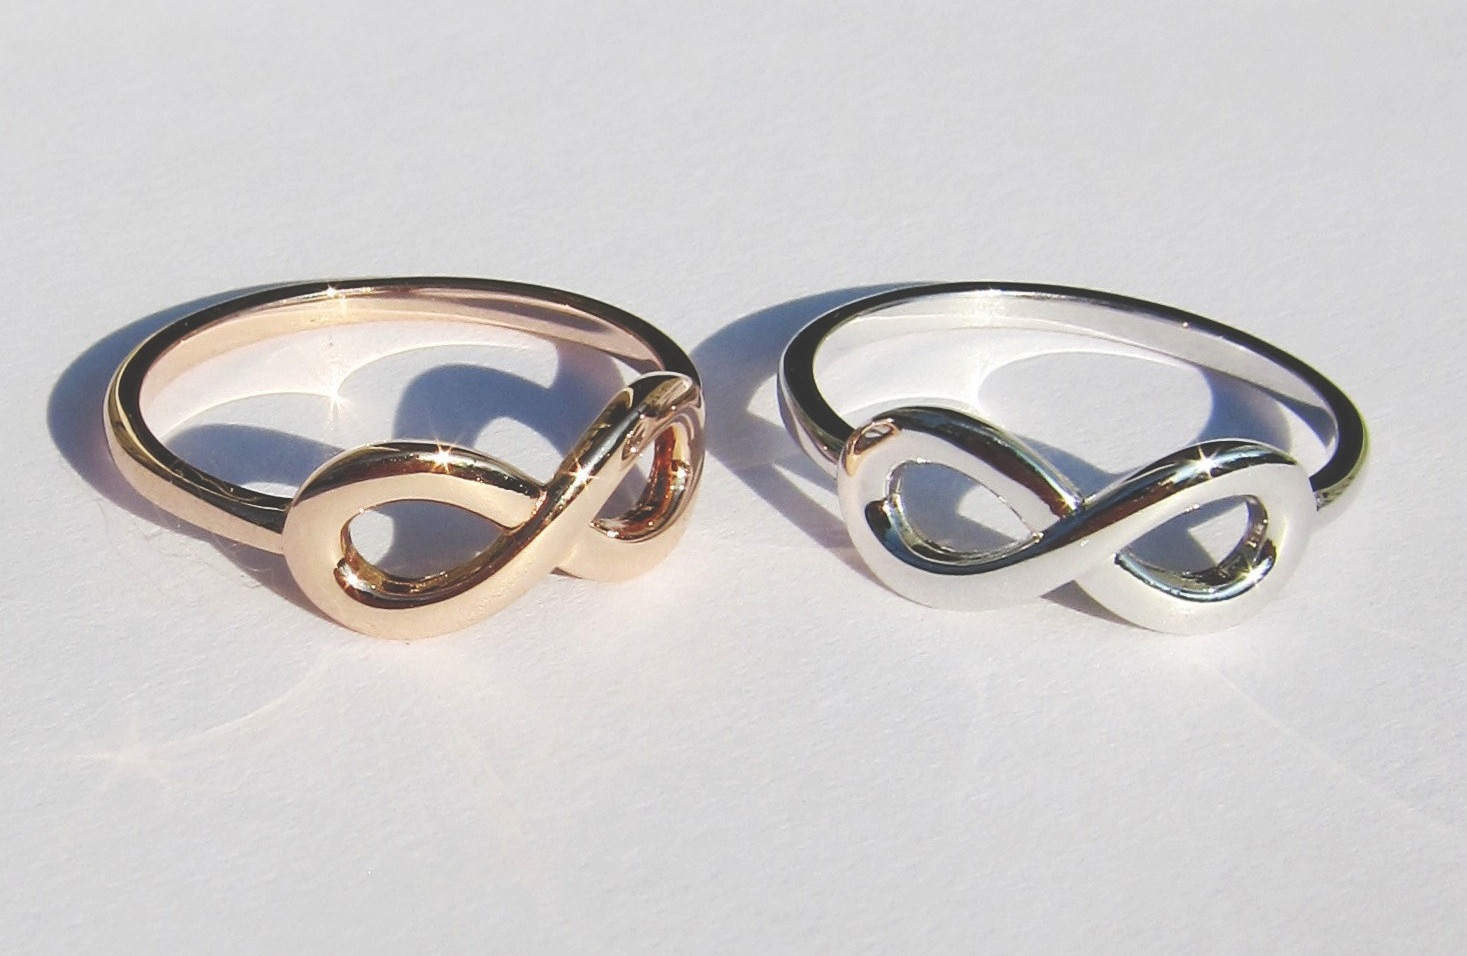 His And Hers Infinity Knot Wedding Rings